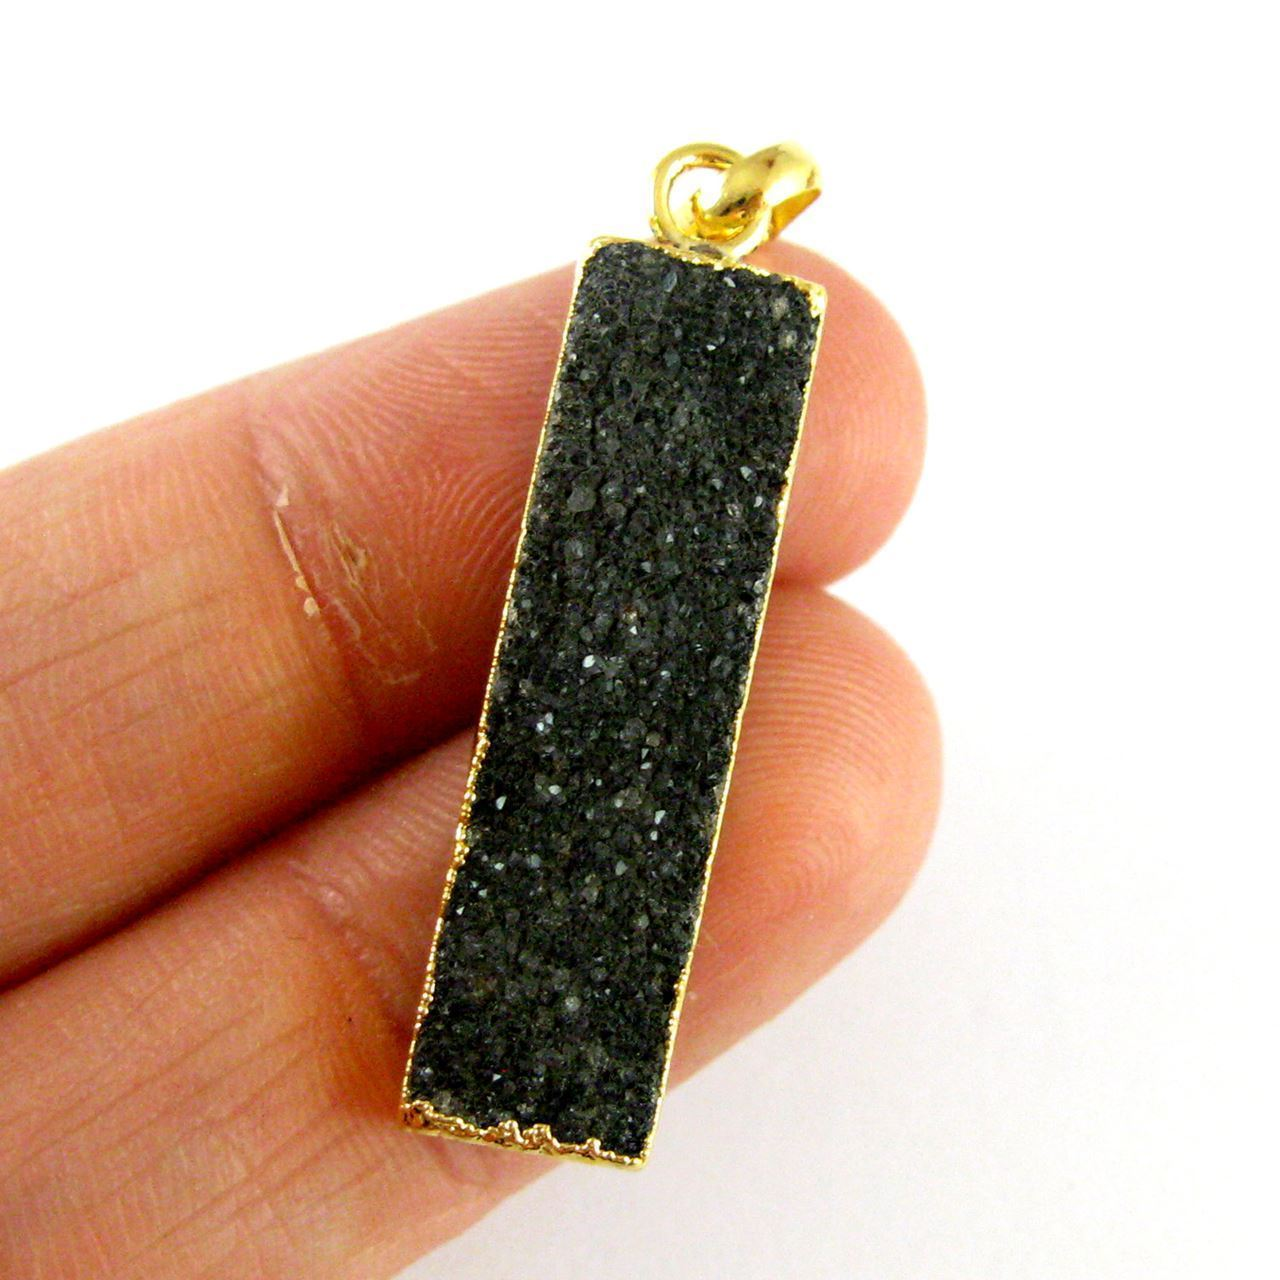 Natural Druzy Agate Bar Pendant, 24K Gold plated Long Vertical Bar-Black